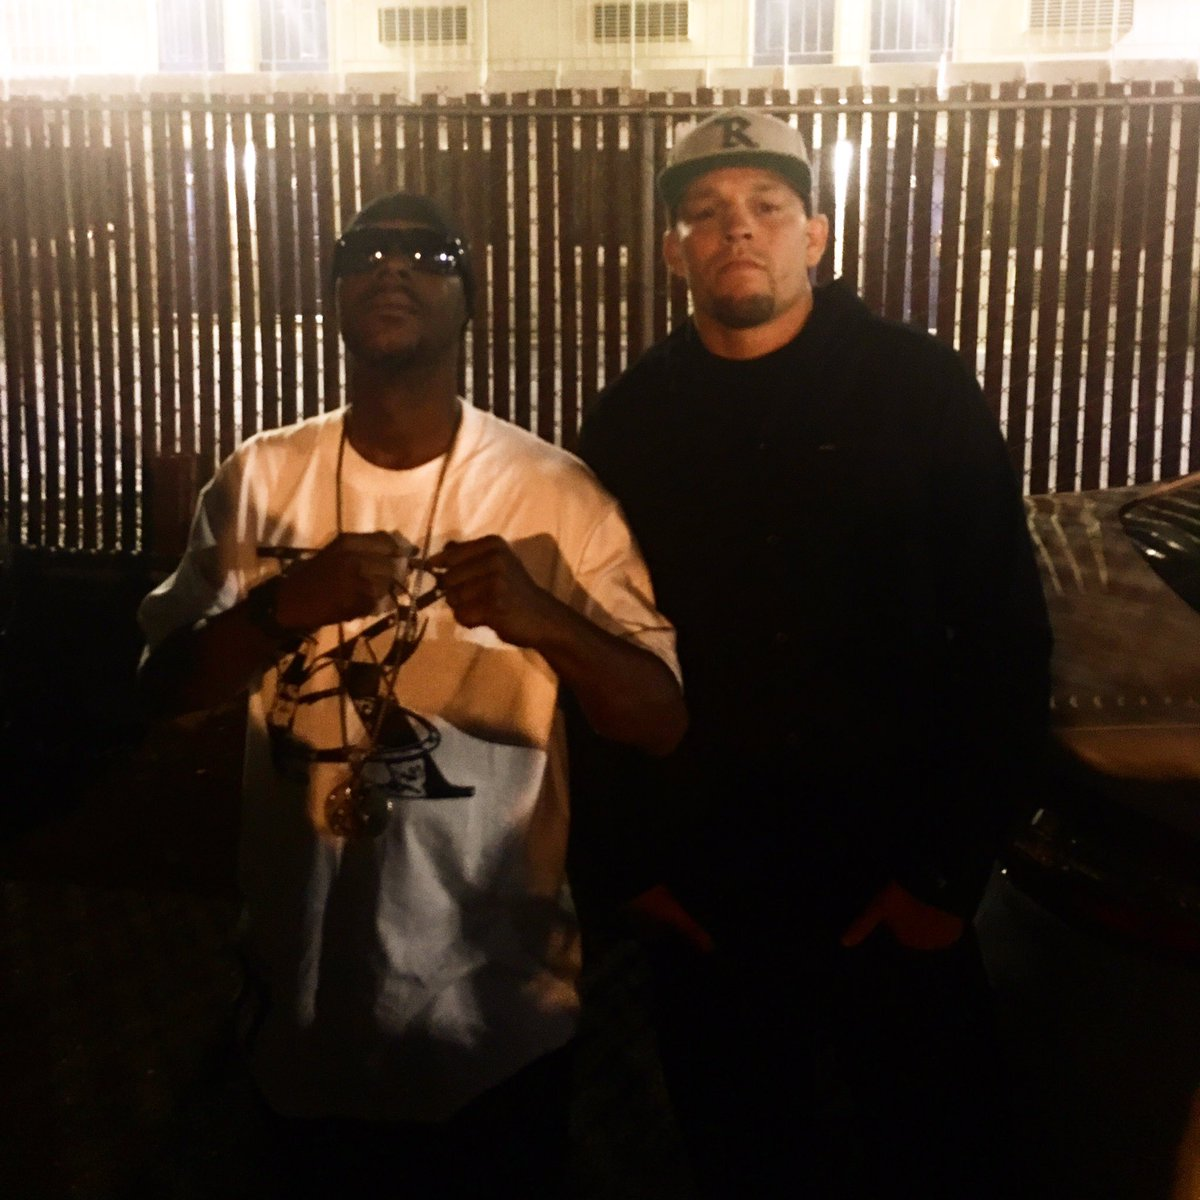 Me and the Homie Nate Diaz at my show last night https://t.co/8pX1kwRYJu